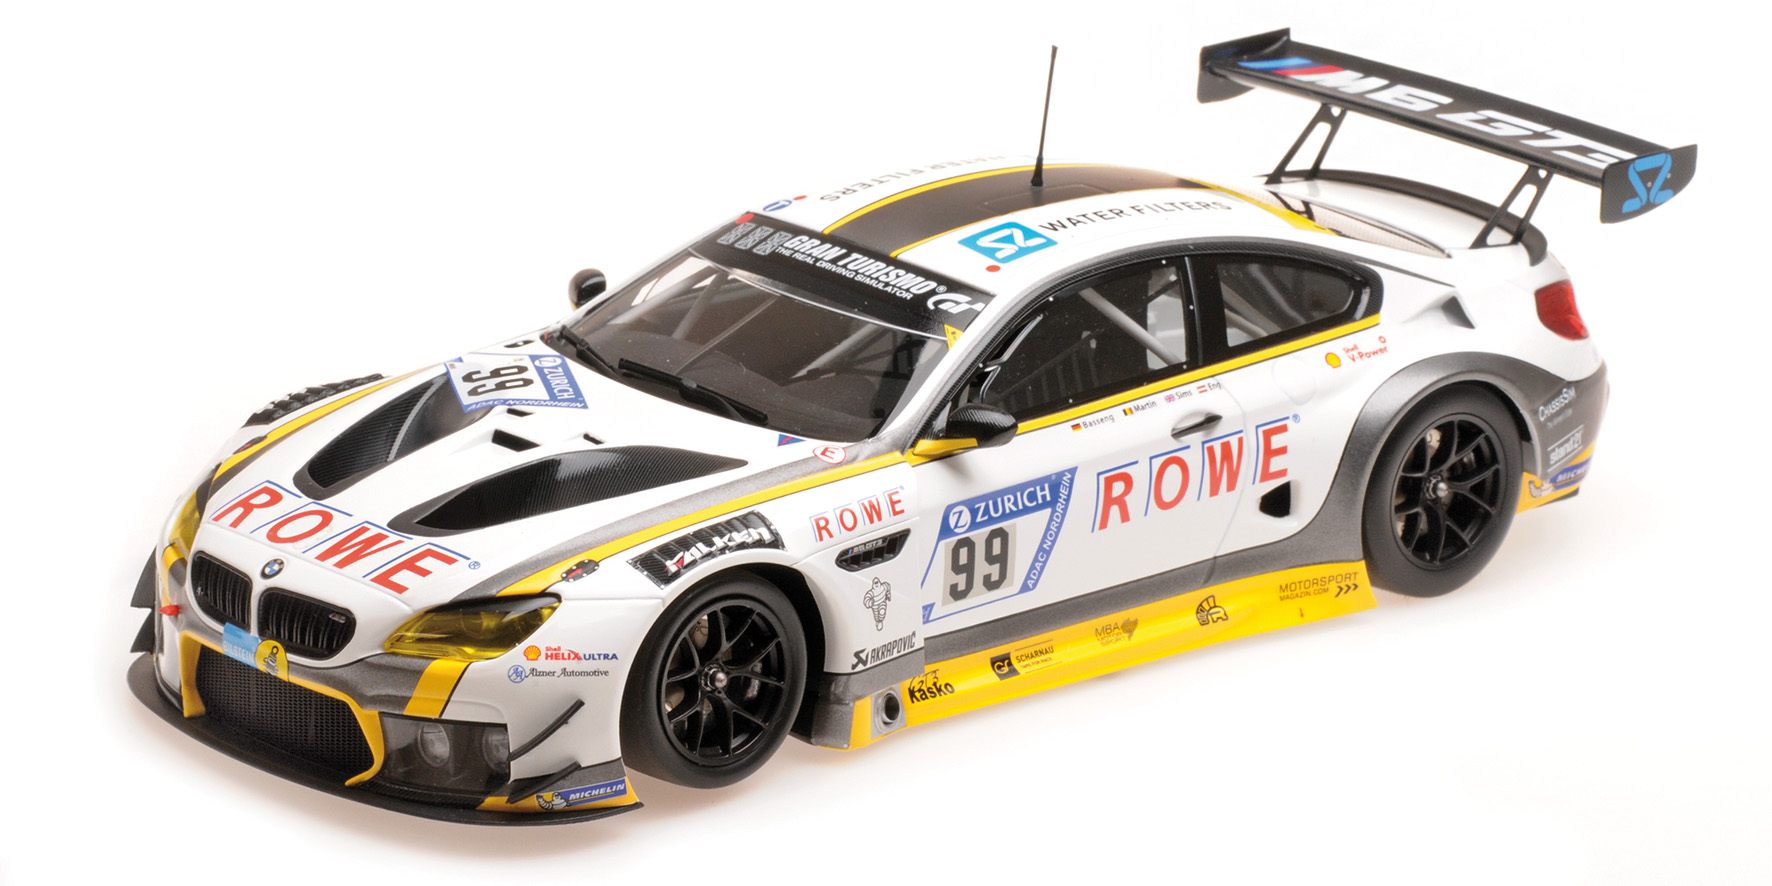 BMW M6 GT3 Rowe Racing 10th Place 24h Nurburgring 2017 Eng/Martin/Basseng